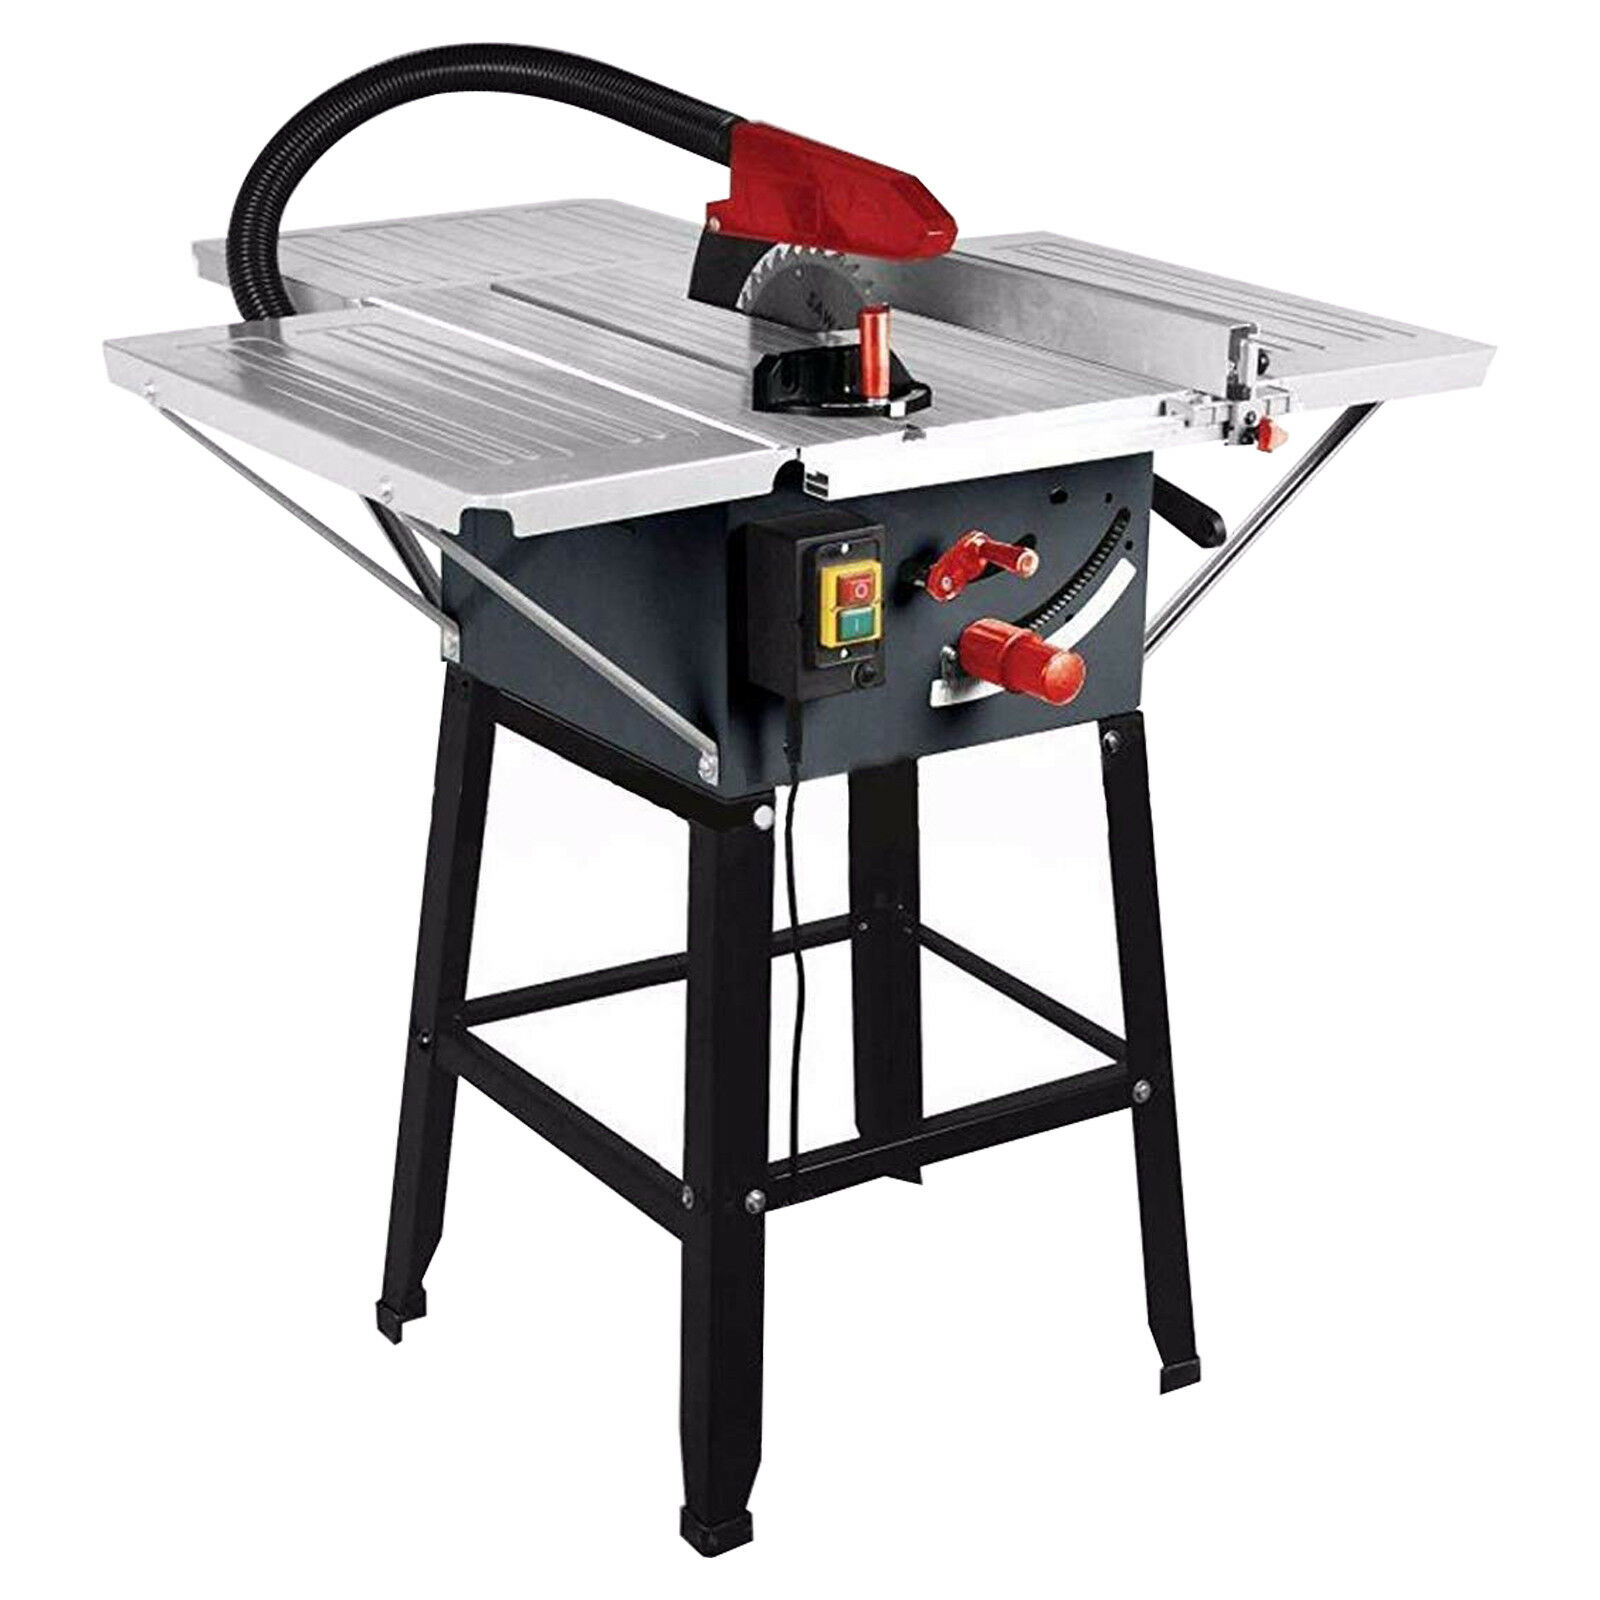 "Brand New Table Saw powerful 1800w 10"" 10"" 10"" Blade With 3 Steel Table Extensions 8487a6"